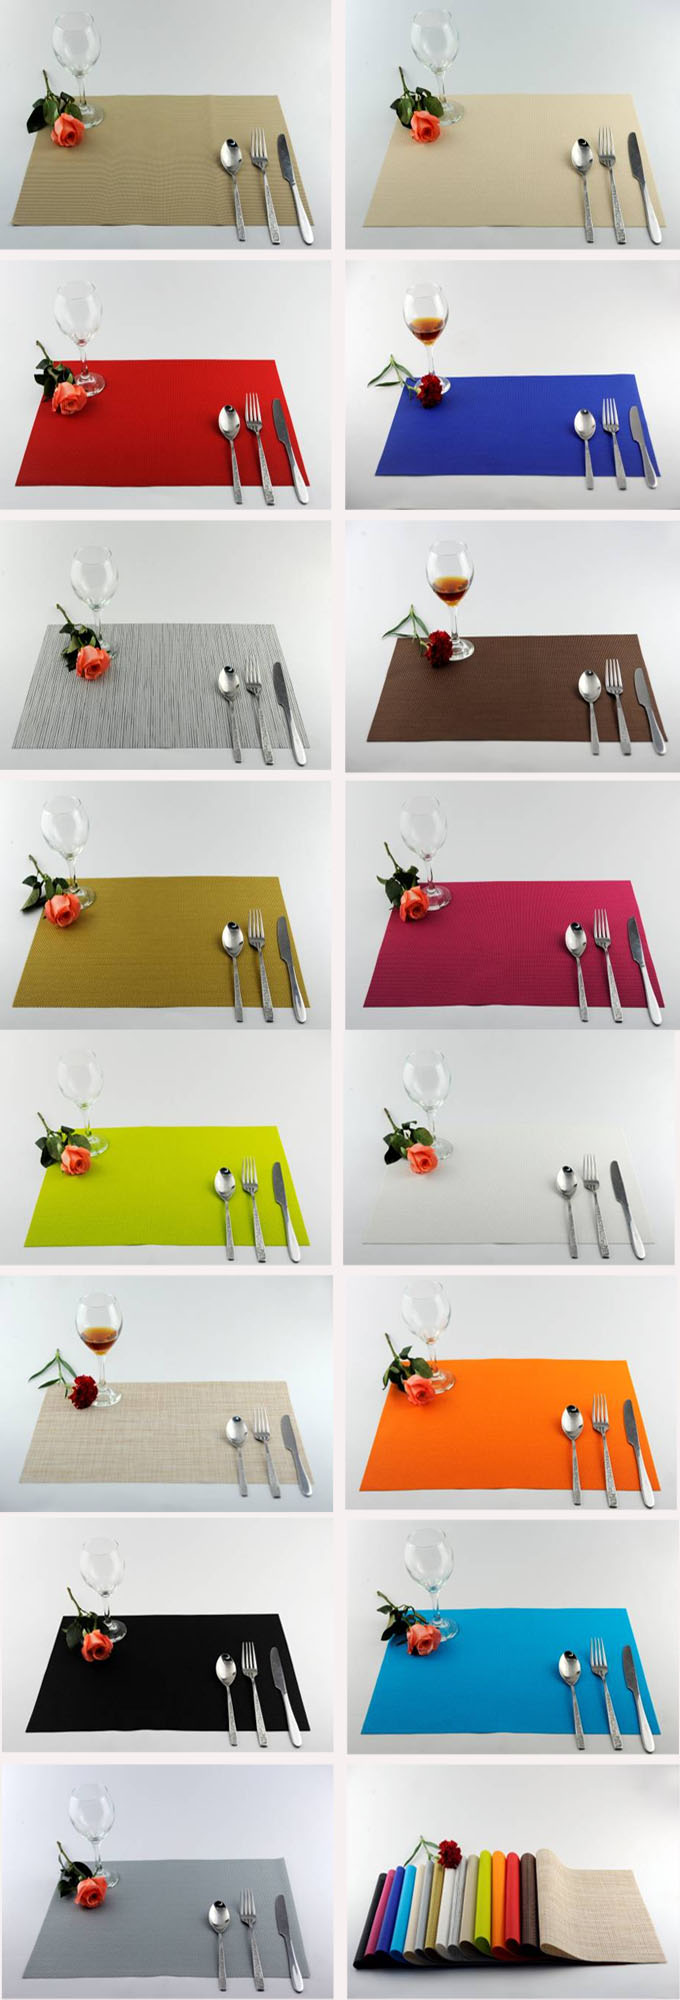 Pure color series of household business dining mat decoration